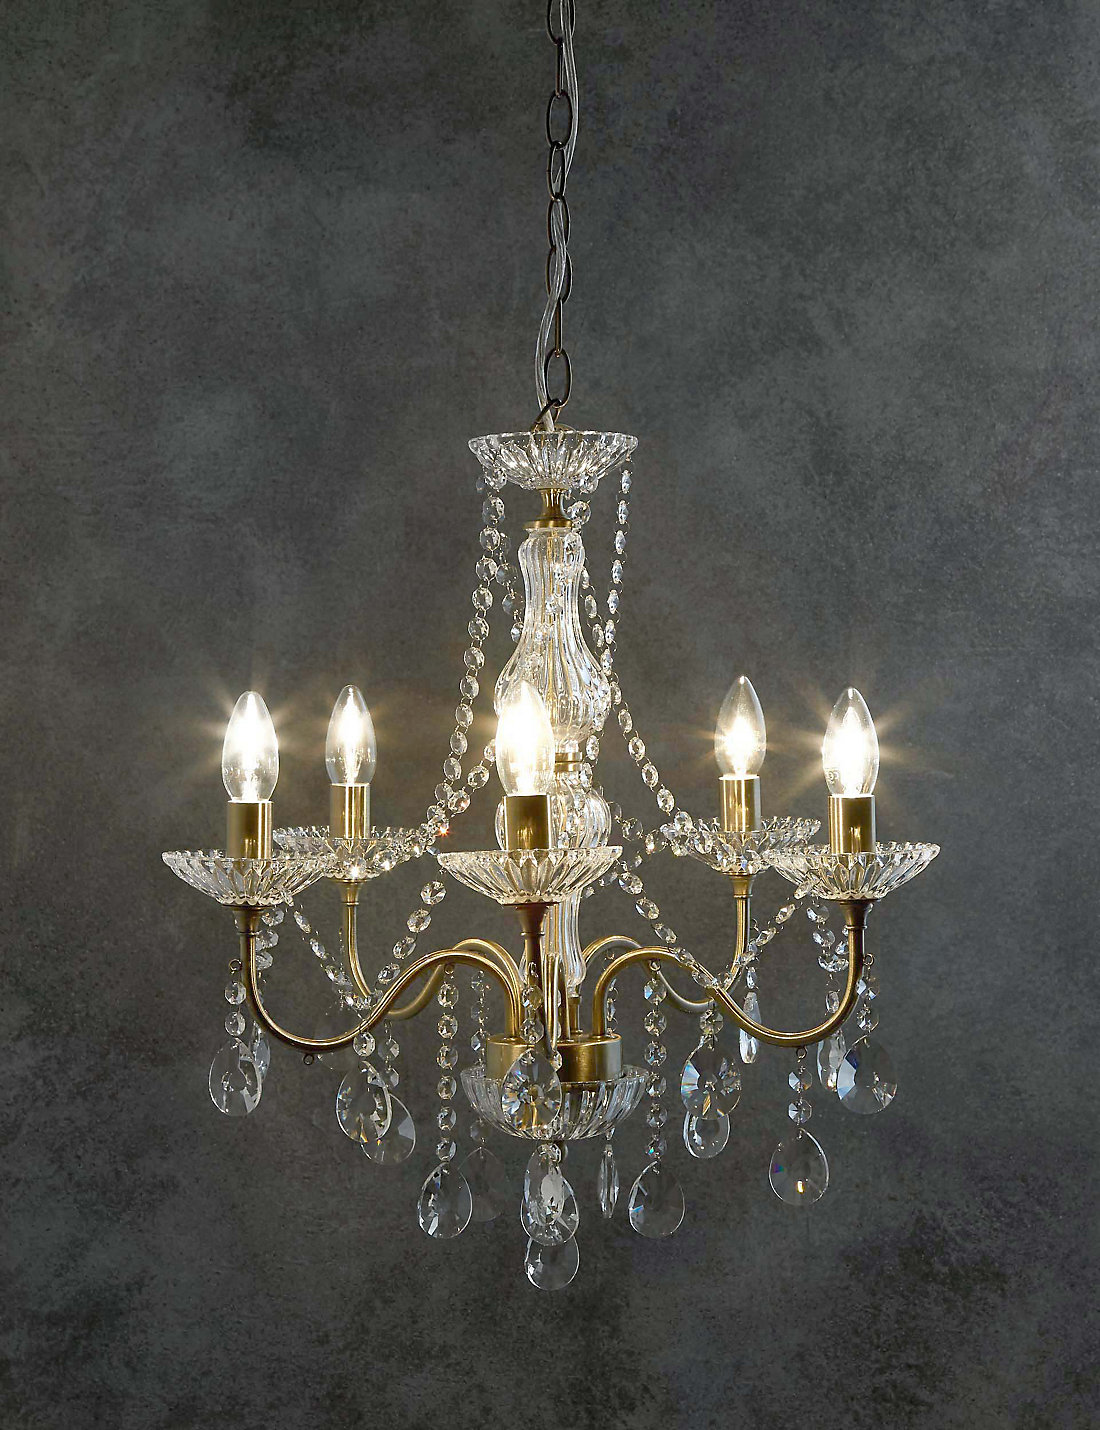 Ceiling lights pendant lighting chandeliers ms dionne chandelier ceiling light arubaitofo Choice Image